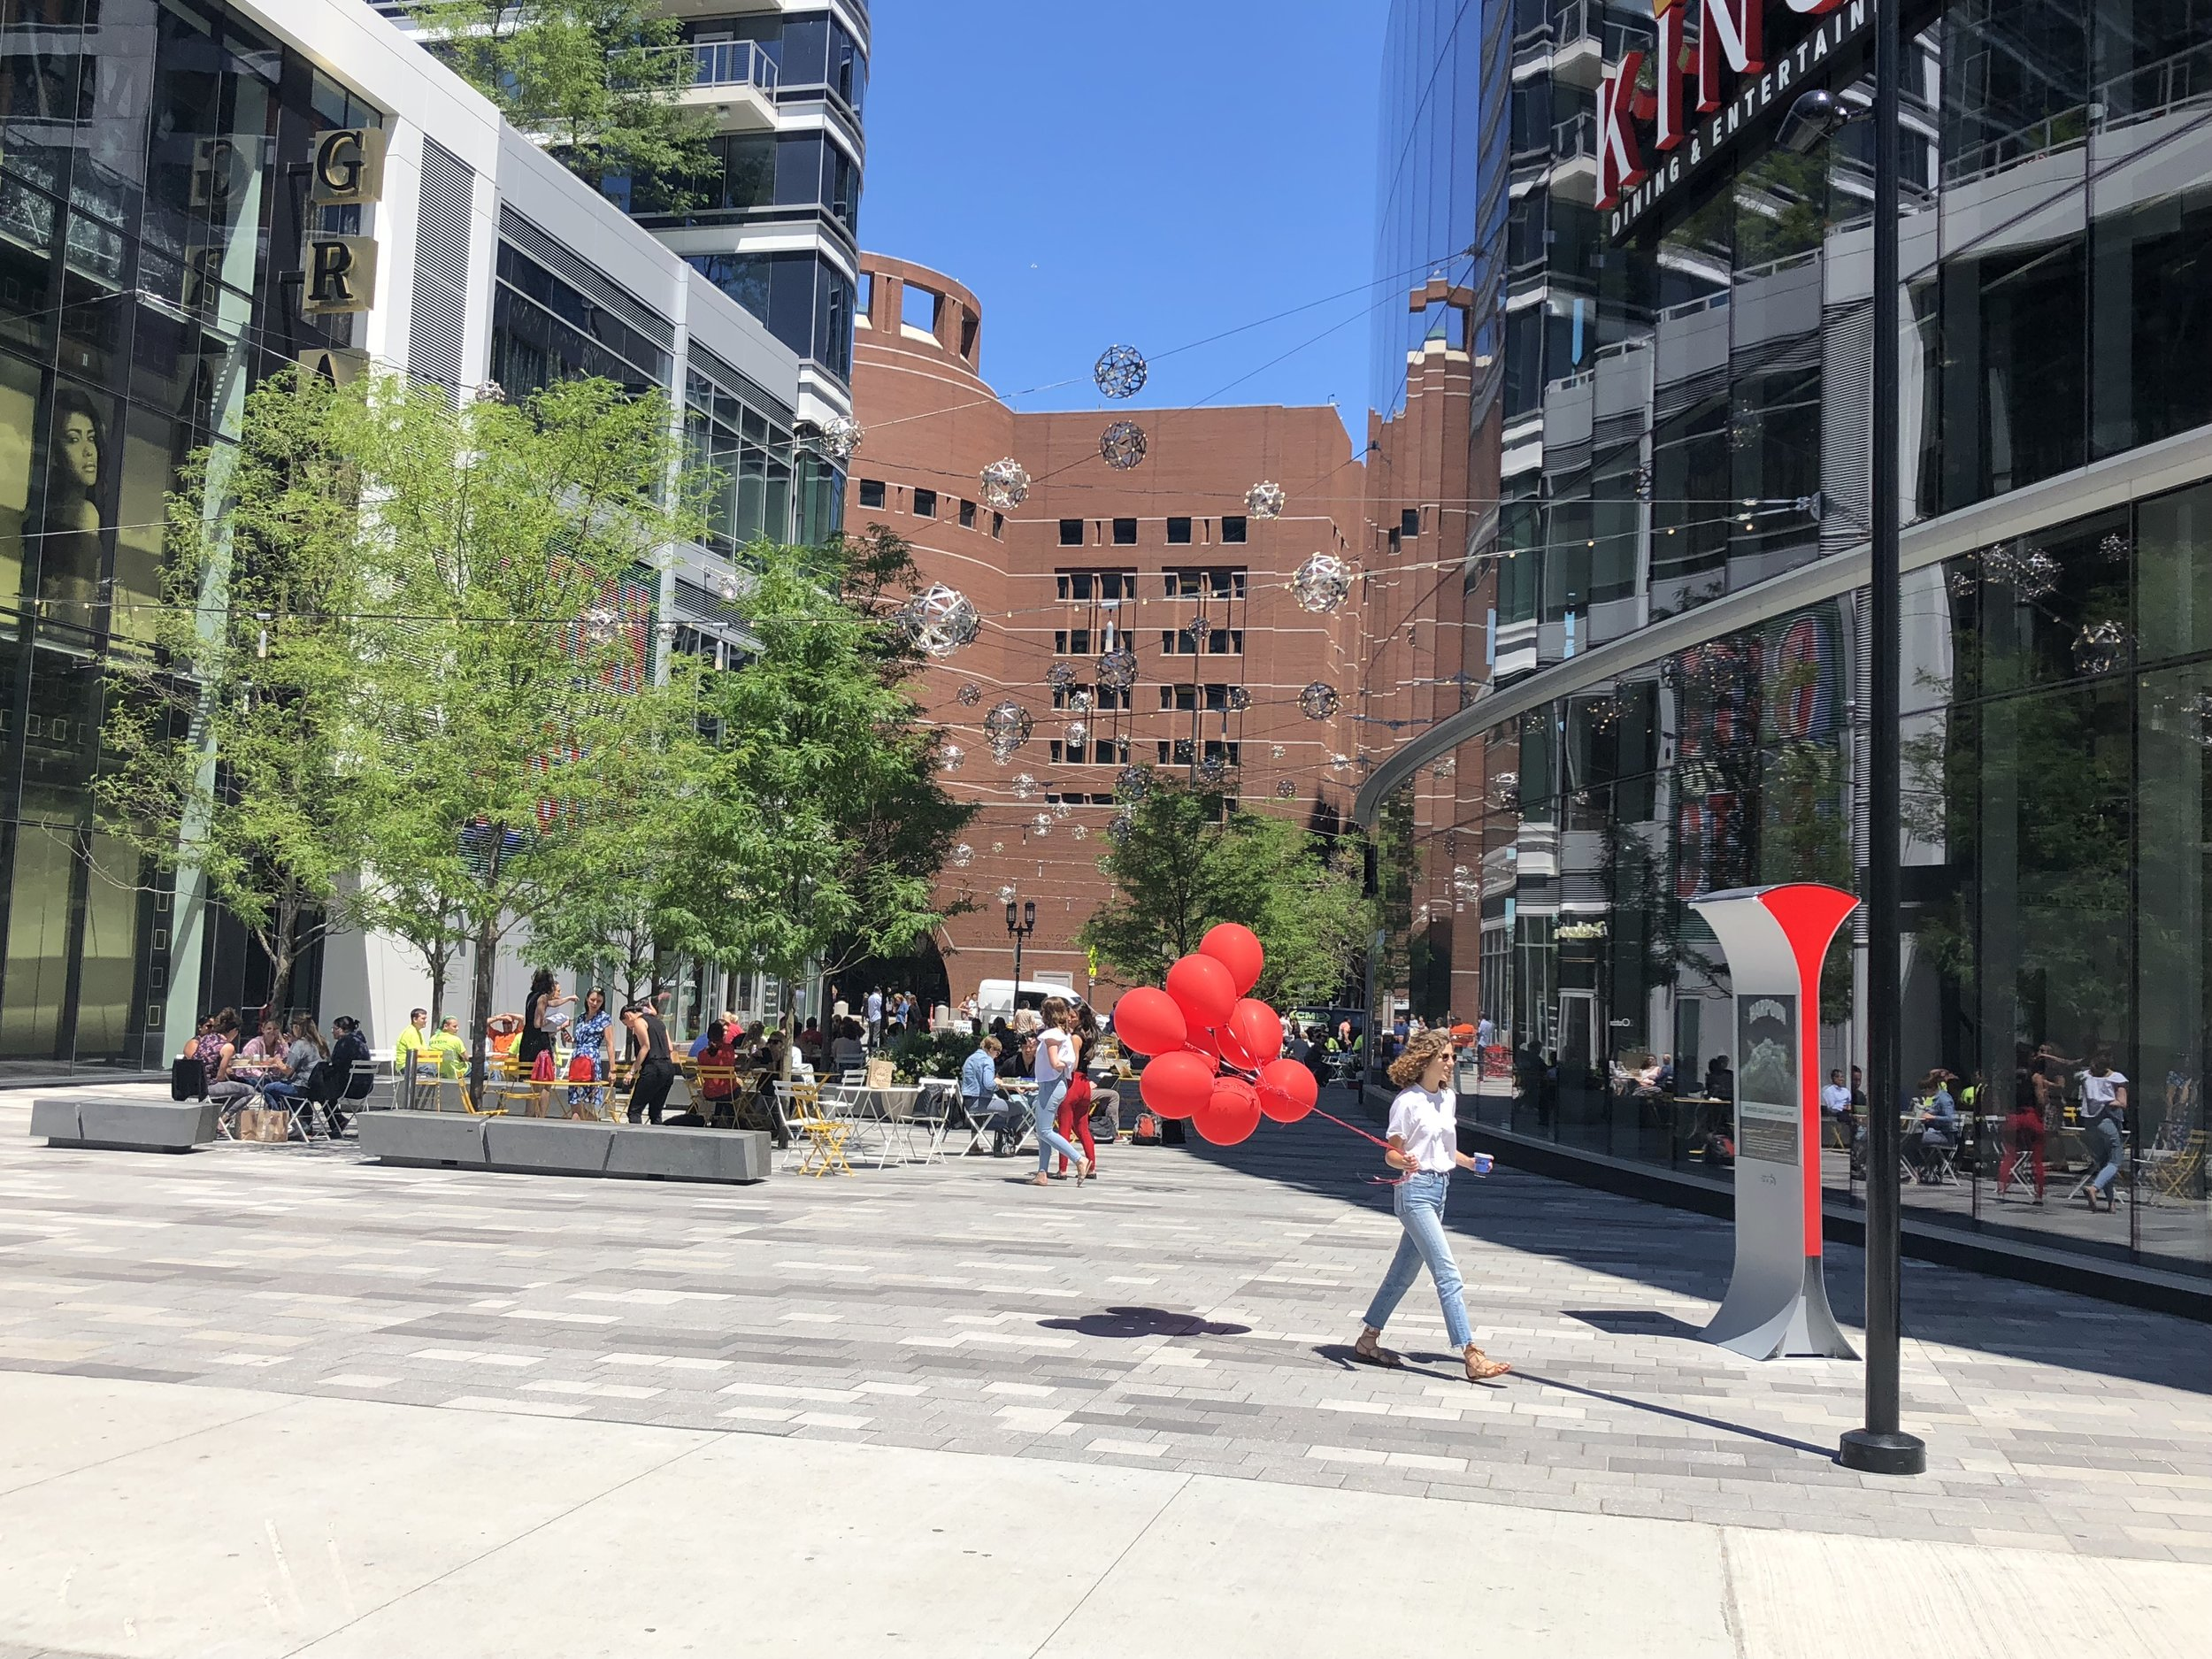 A woman strolls past the Soofa Sign in Seaport One with some balloons.